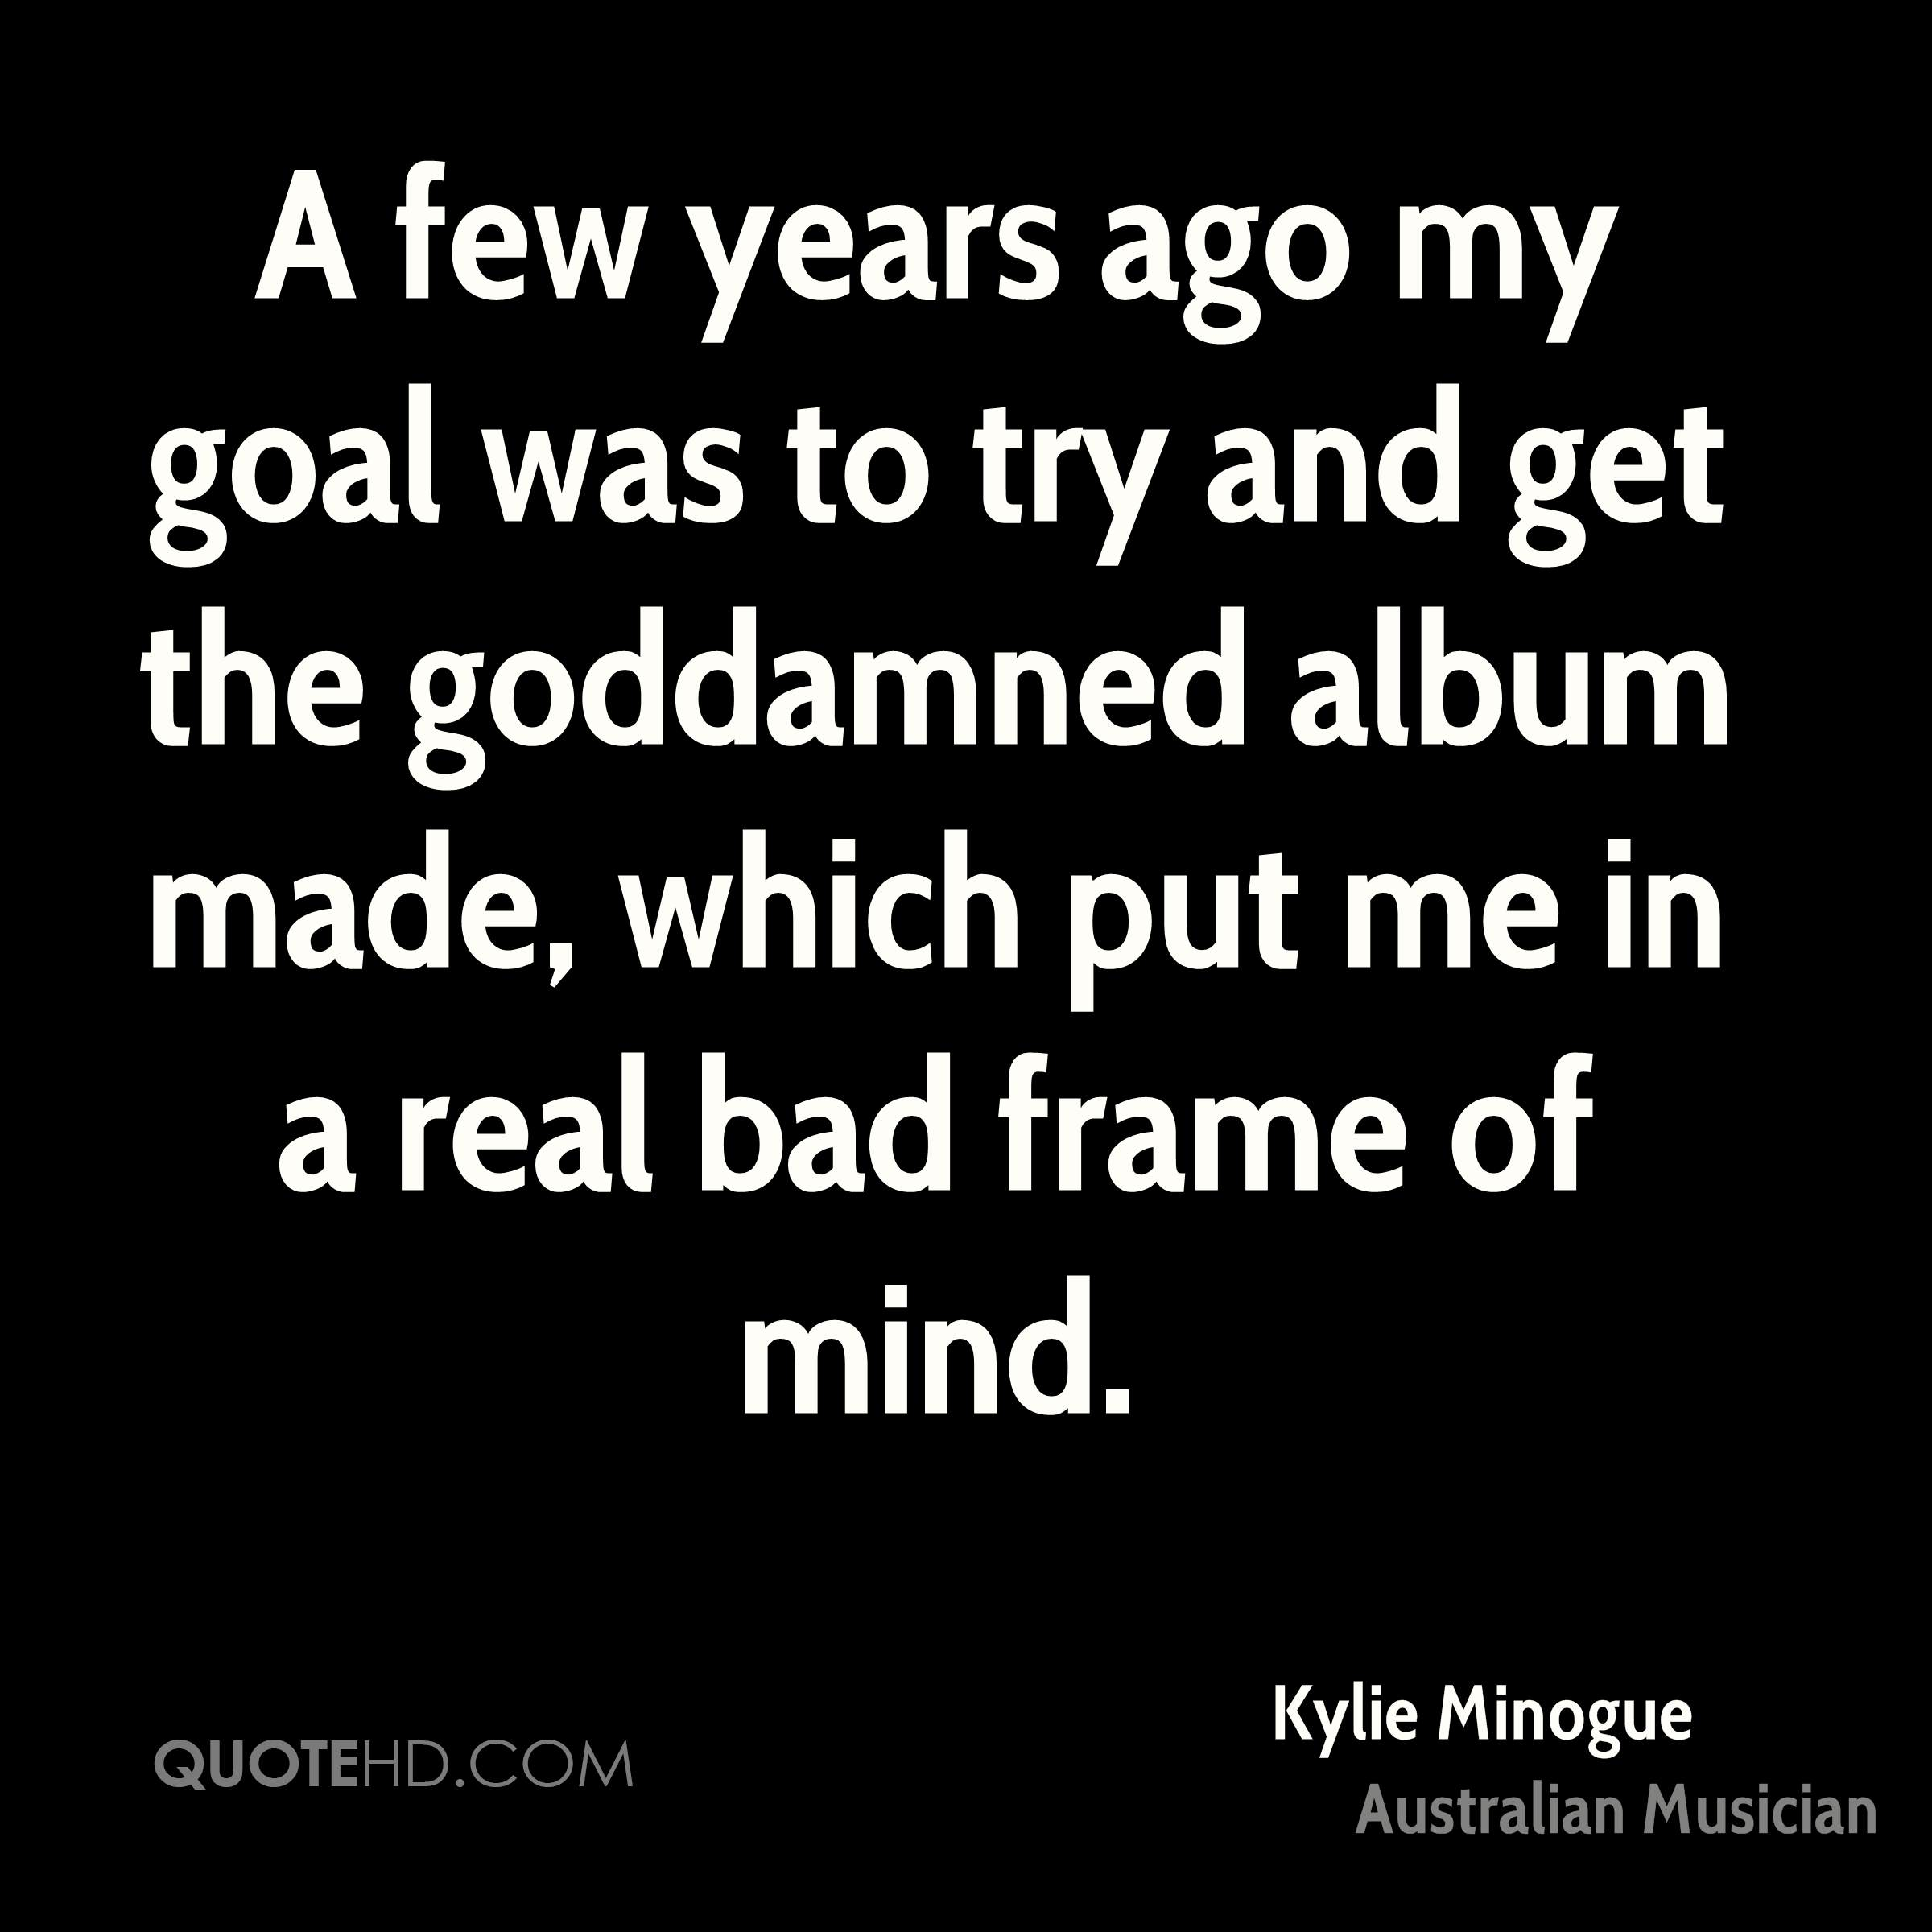 A few years ago my goal was to try and get the goddamned album made, which put me in a real bad frame of mind.